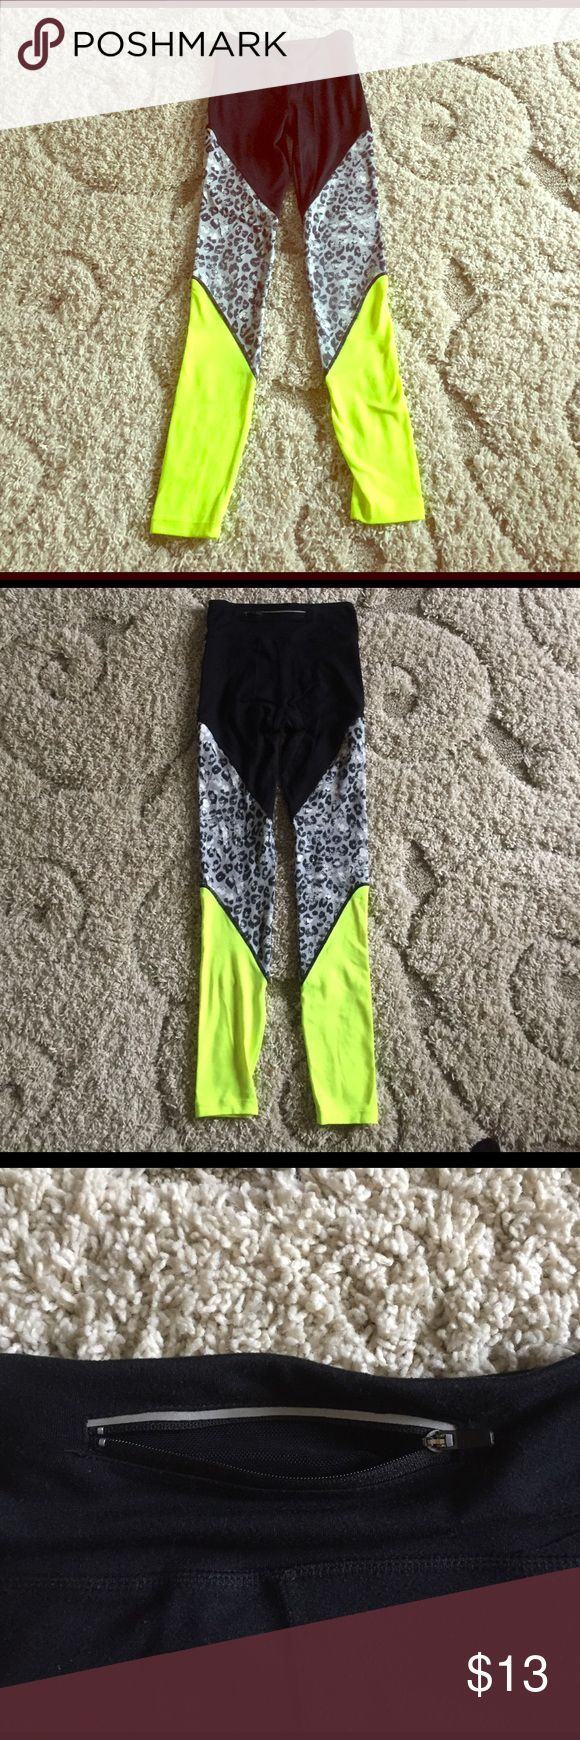 Jessica Simpson legging S neon yellow yoga workout Jessica Simpson yoga workout leggings. Neon yellow color and zippered pocket in back on waistline. Very cute, just a little too small for me Jessica Simpson Pants Leggings